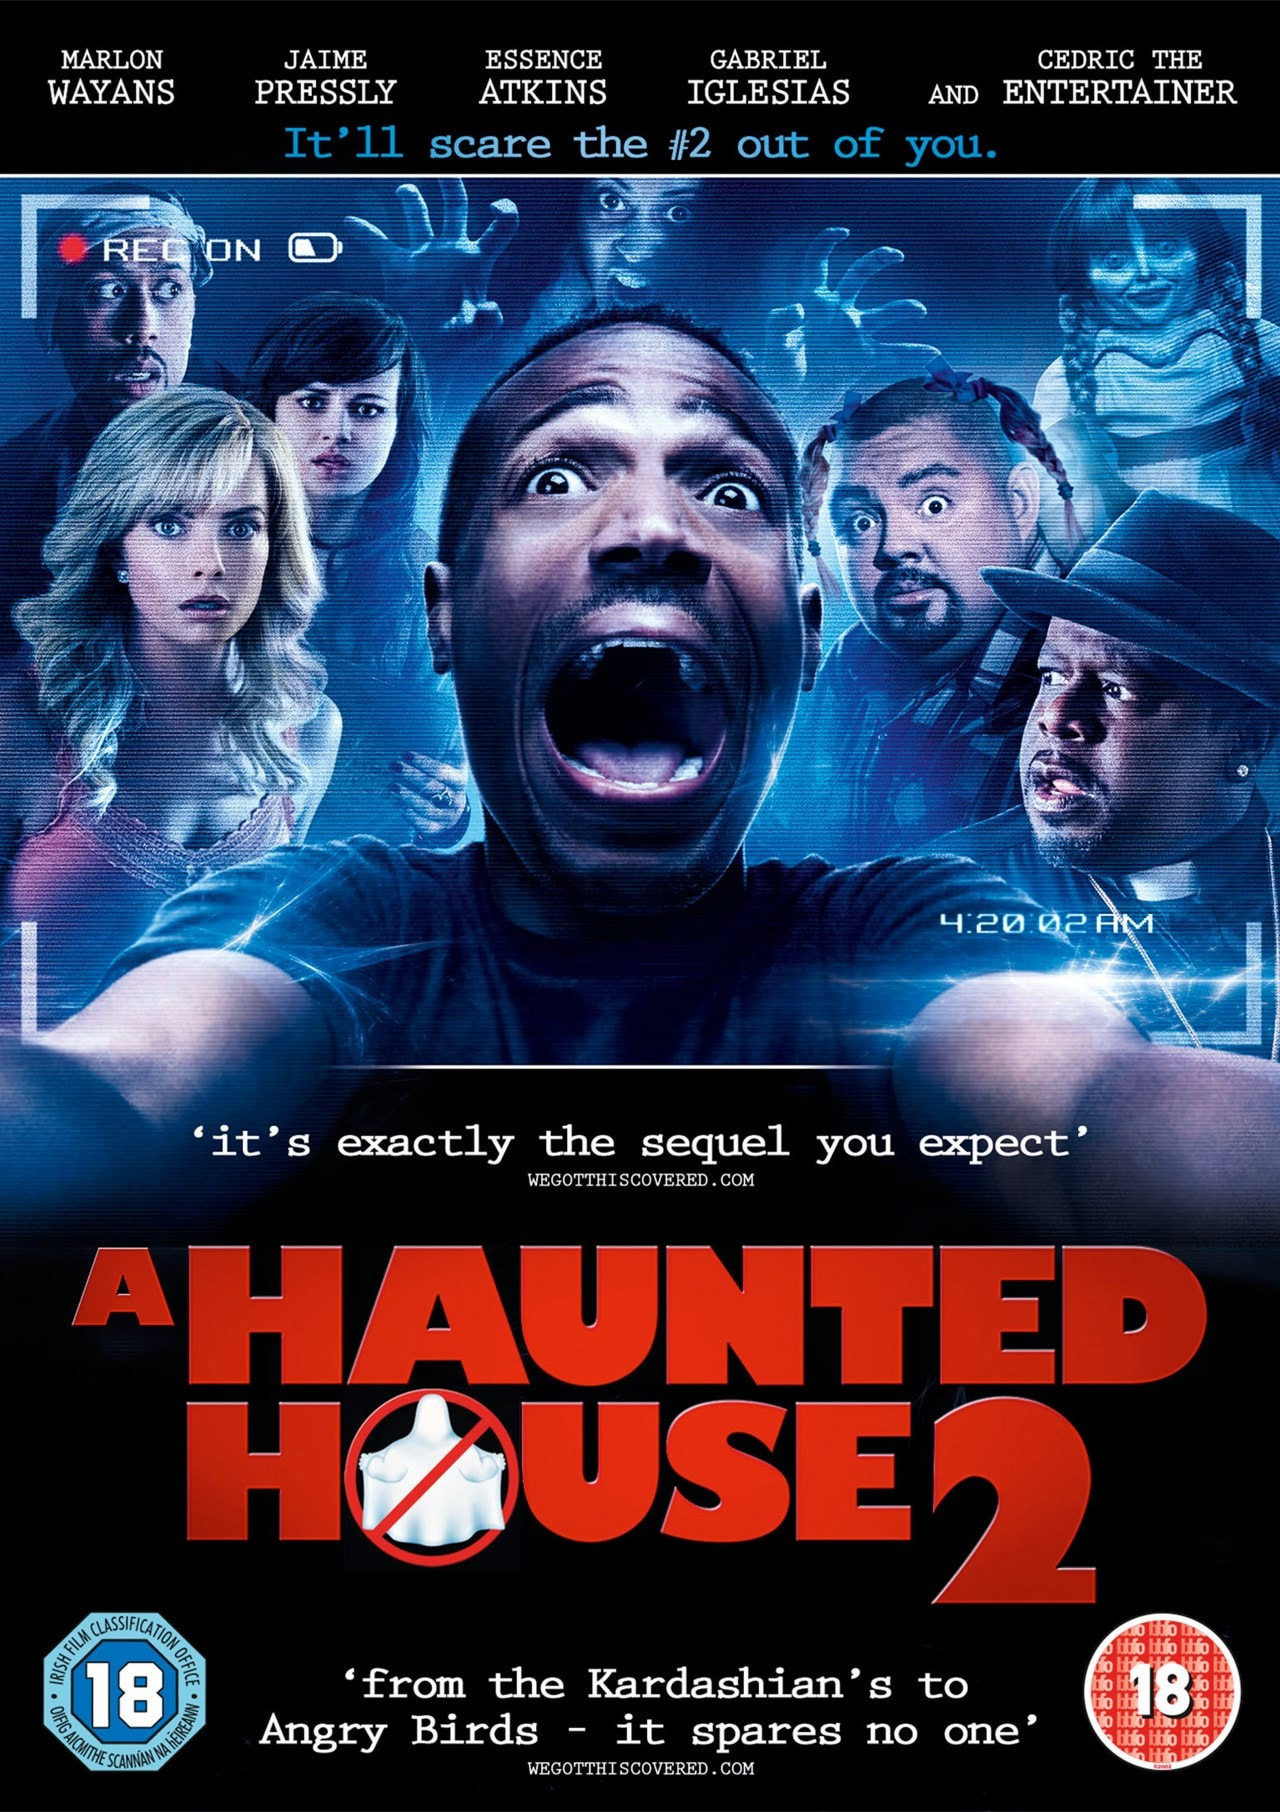 A Haunted House 2 - 1